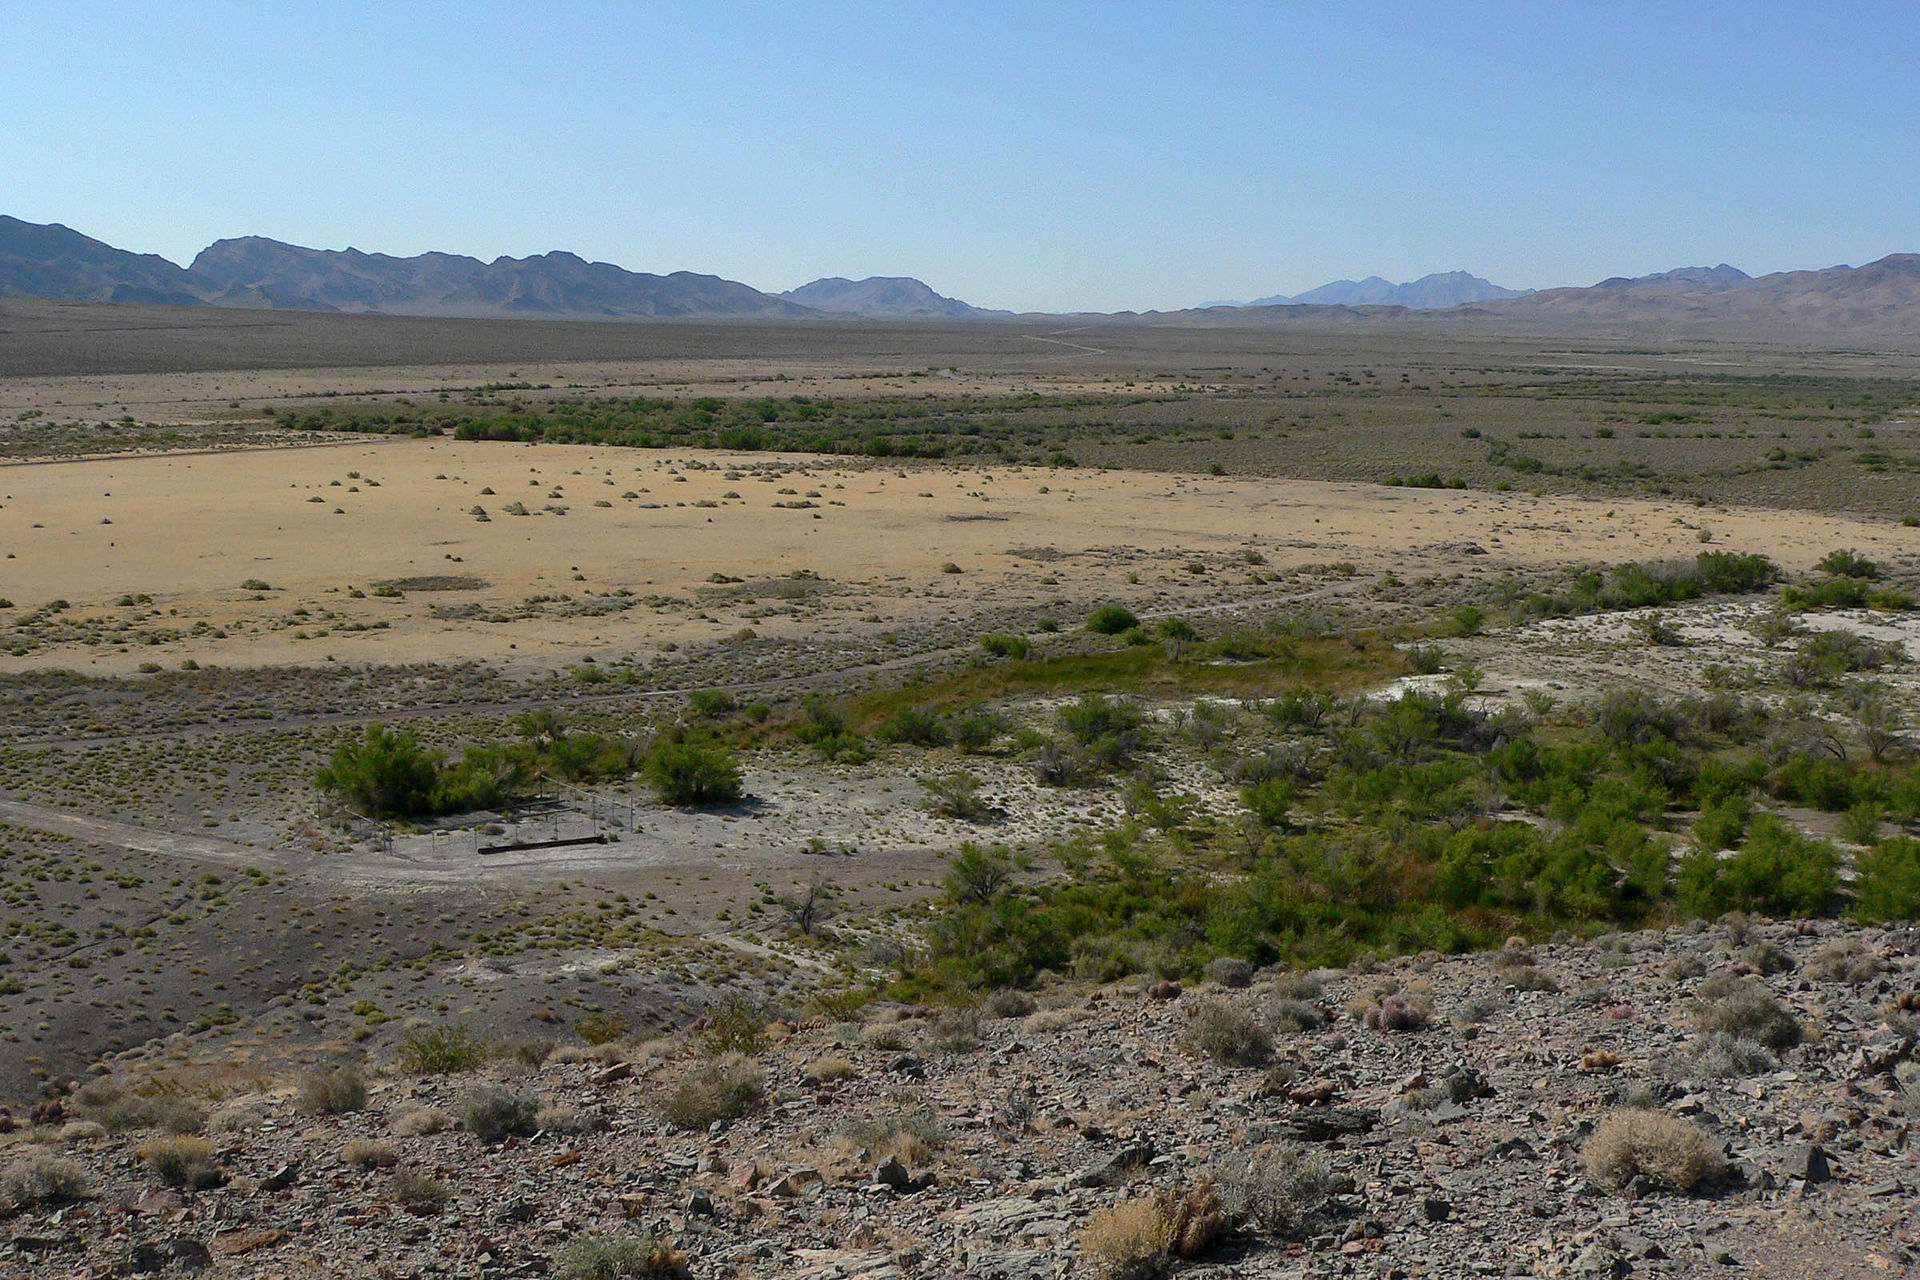 Ash meadows national wildlife refuge wikimedia commons for Fish springs nevada